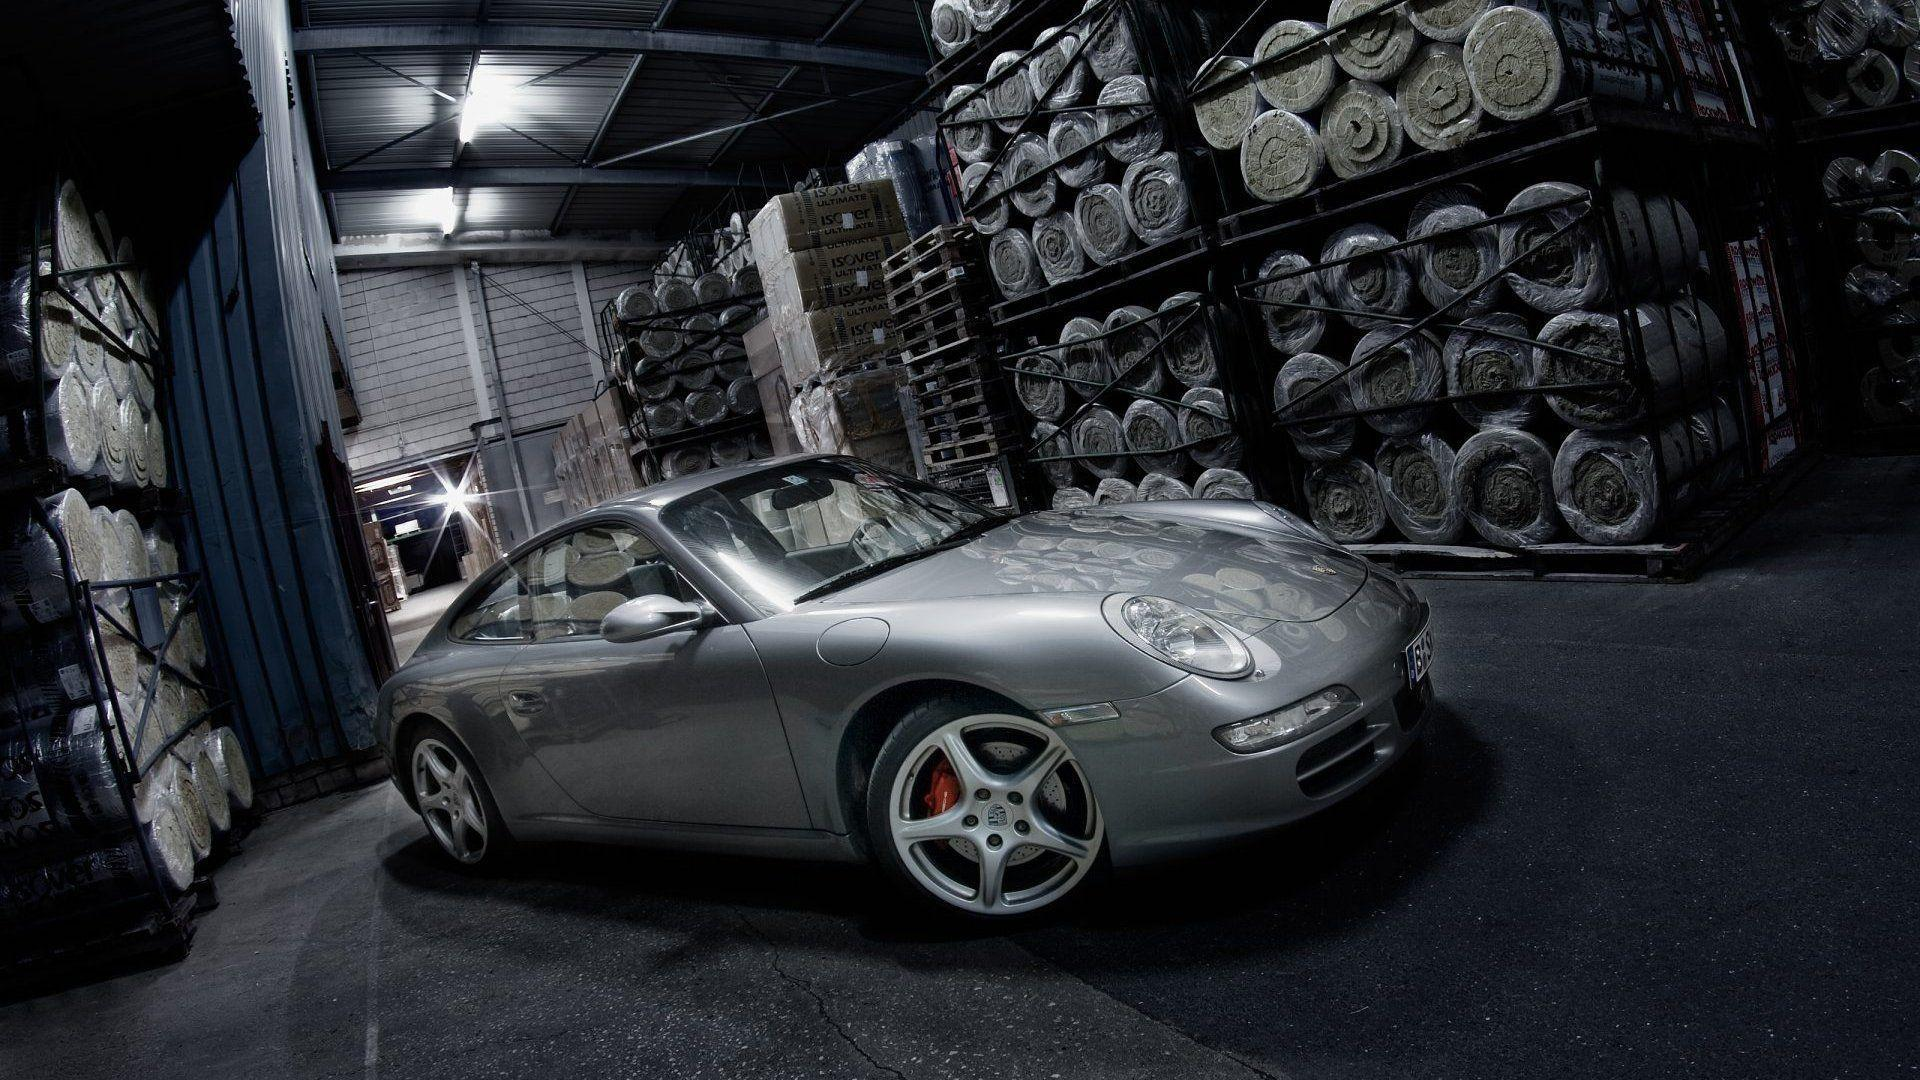 Cool Porsche Exclusive HD Wallpapers #1814